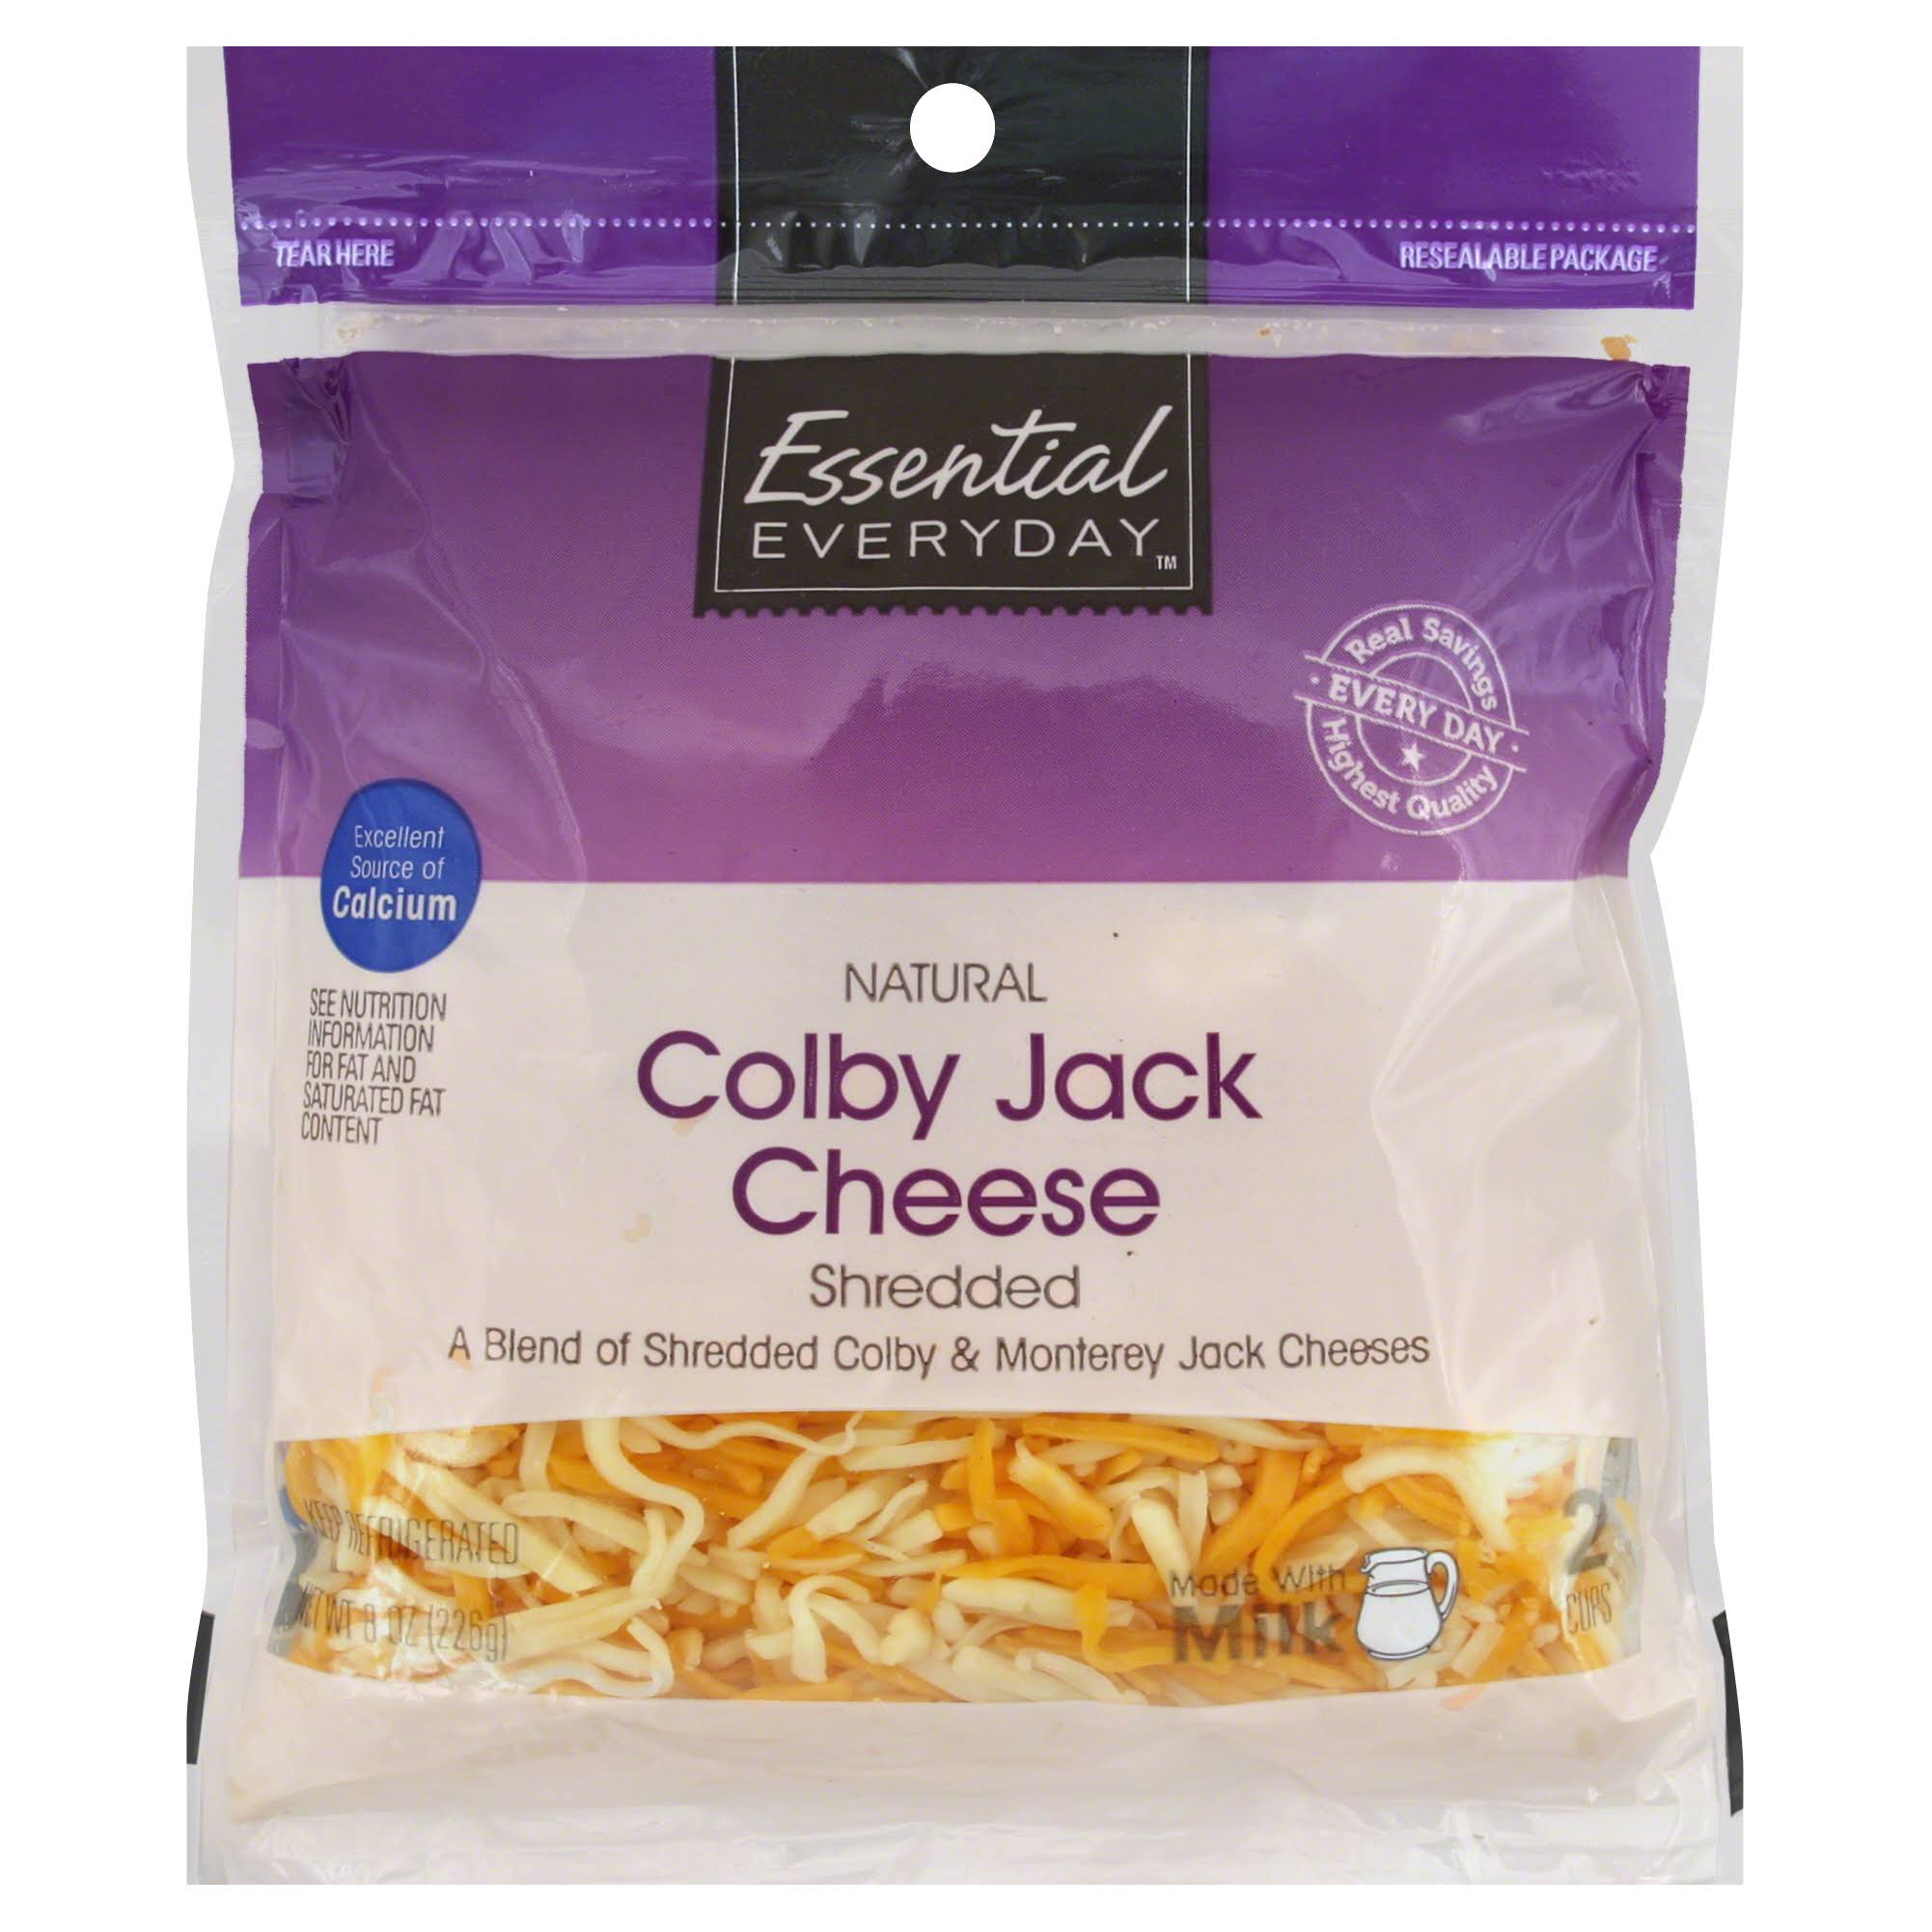 Essential Everyday Shredded Cheese, Colby Jack - 8 oz